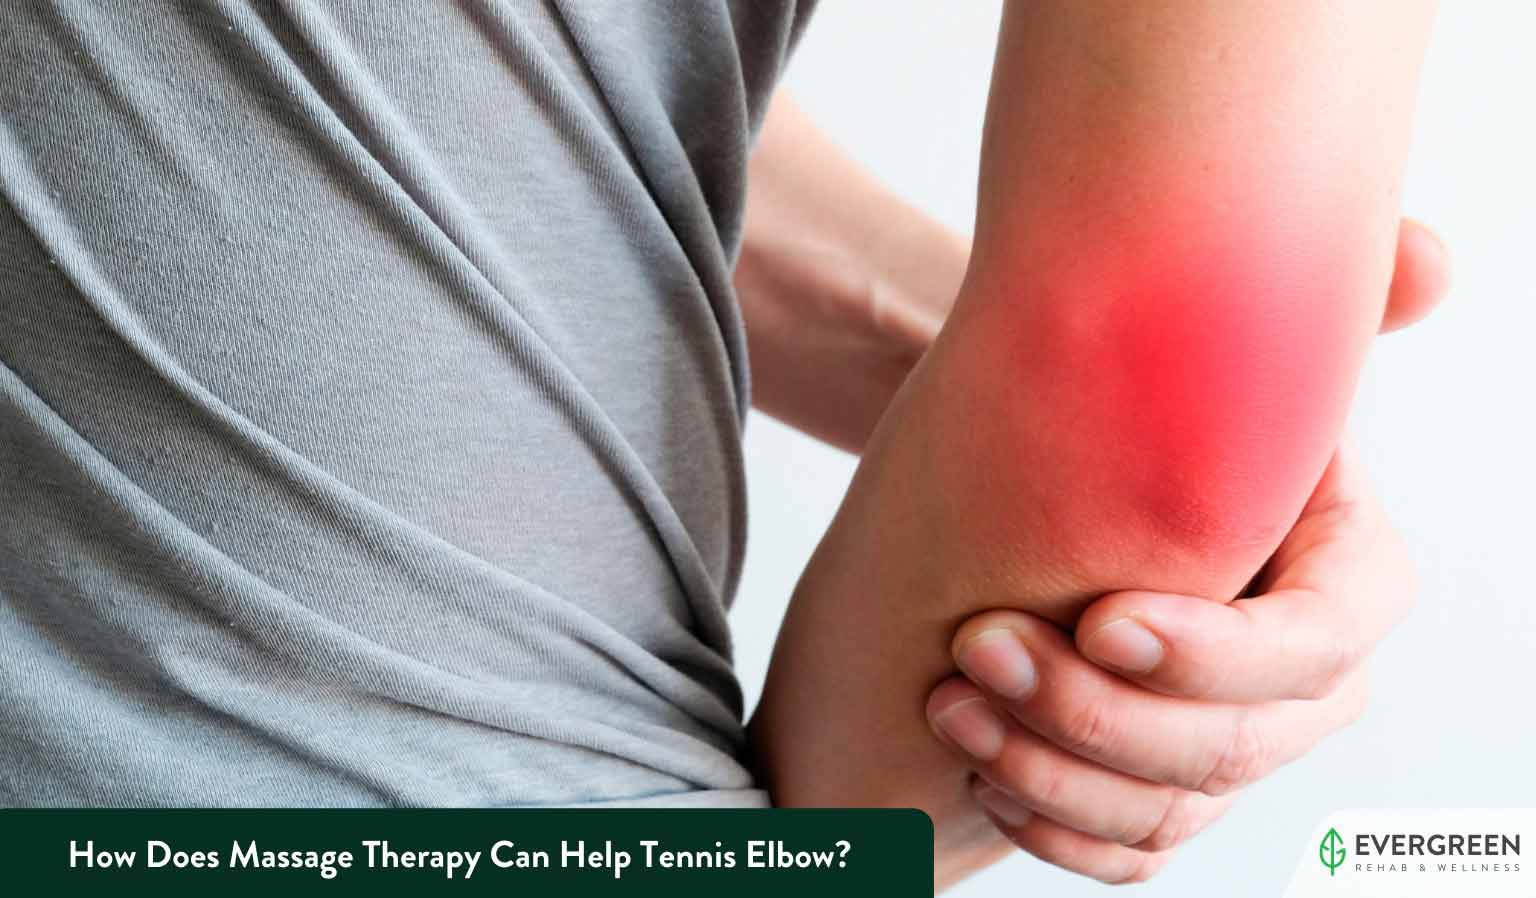 How Does Massage Therapy Can Help Tennis Elbow?